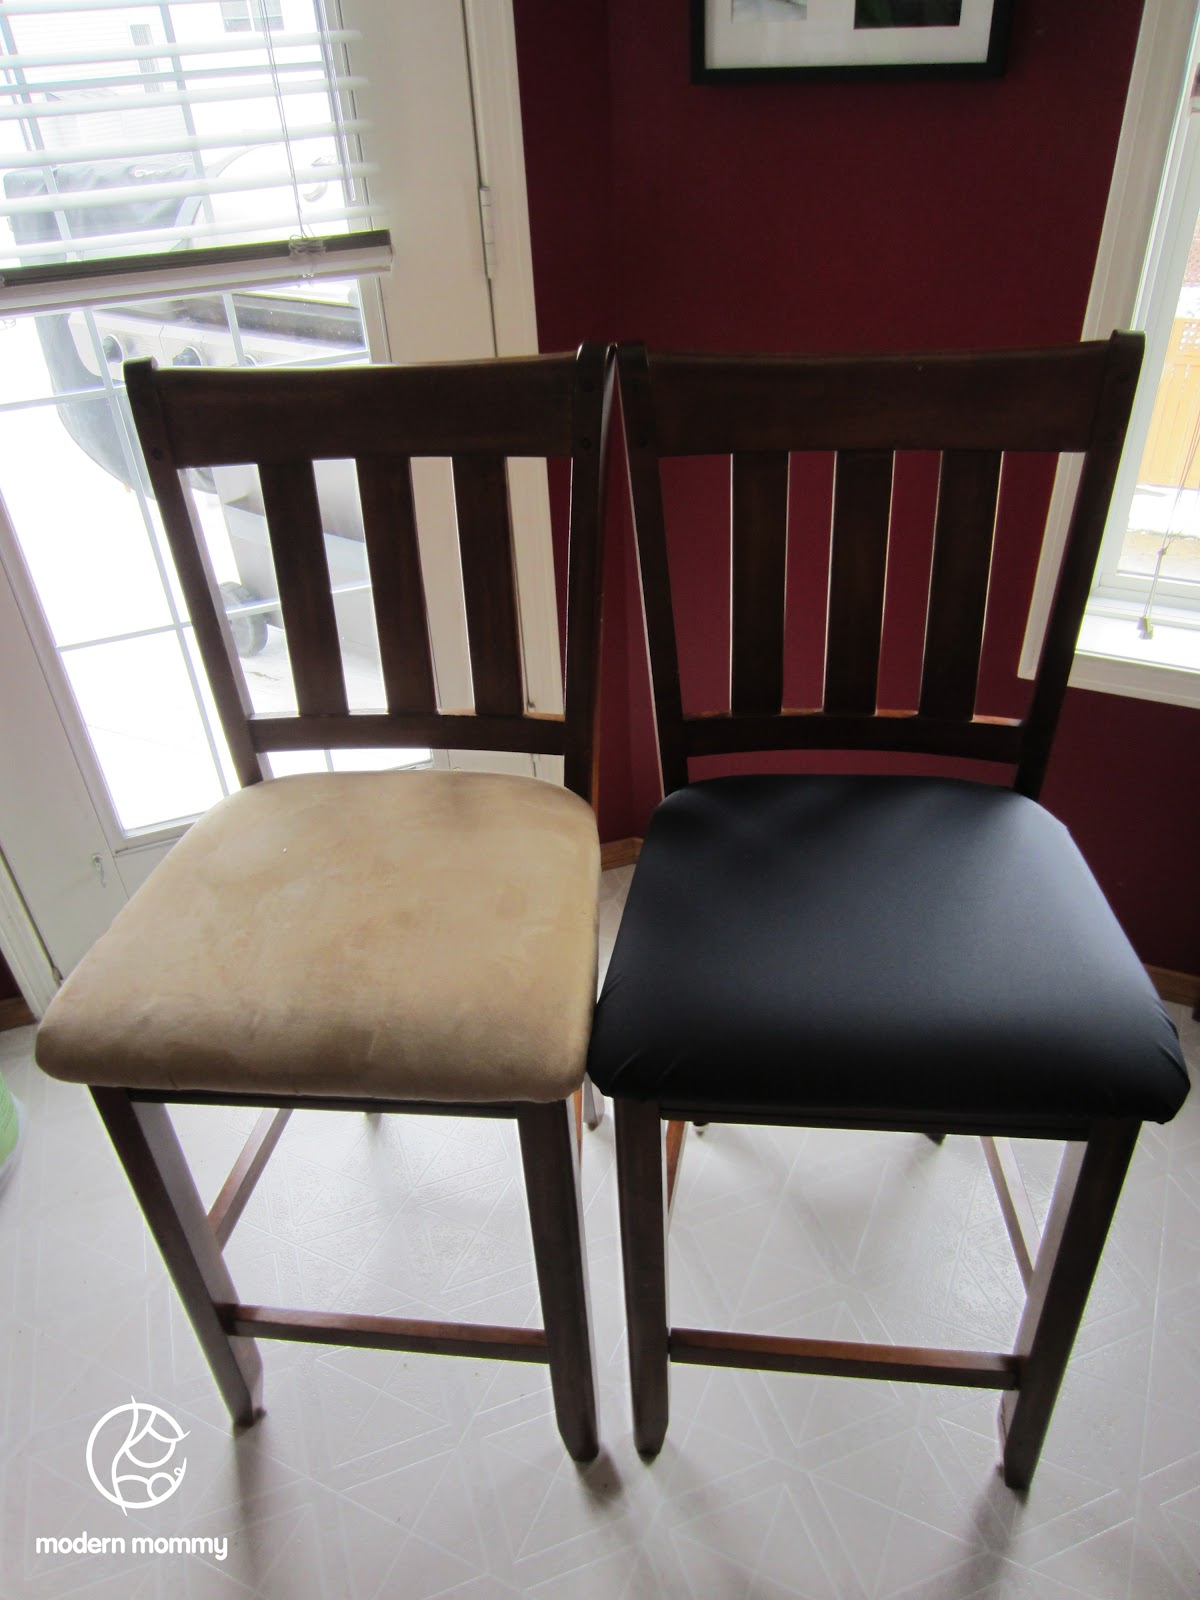 Home DIY: Reupholstered Dining Chairs